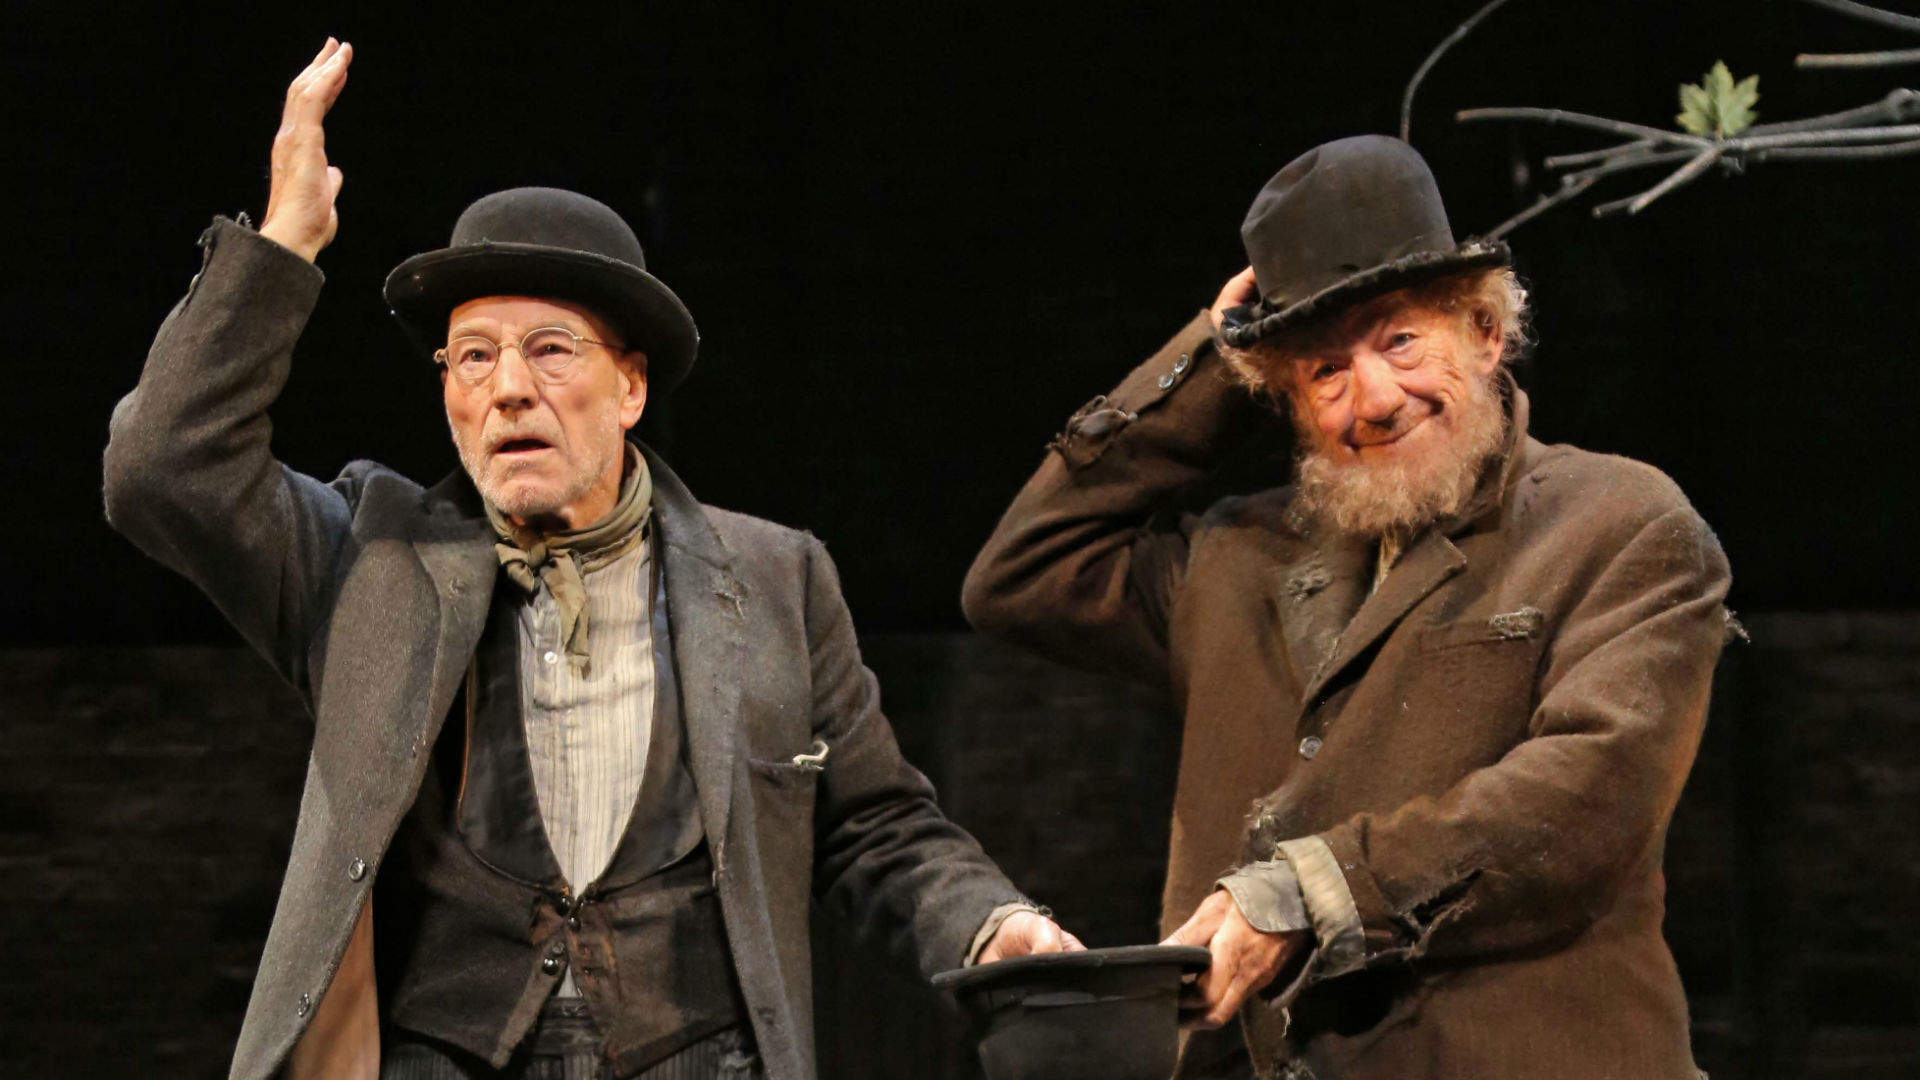 Ian McKellen and Patrick Stewart delight in the eternal puzzles of No Man's Land